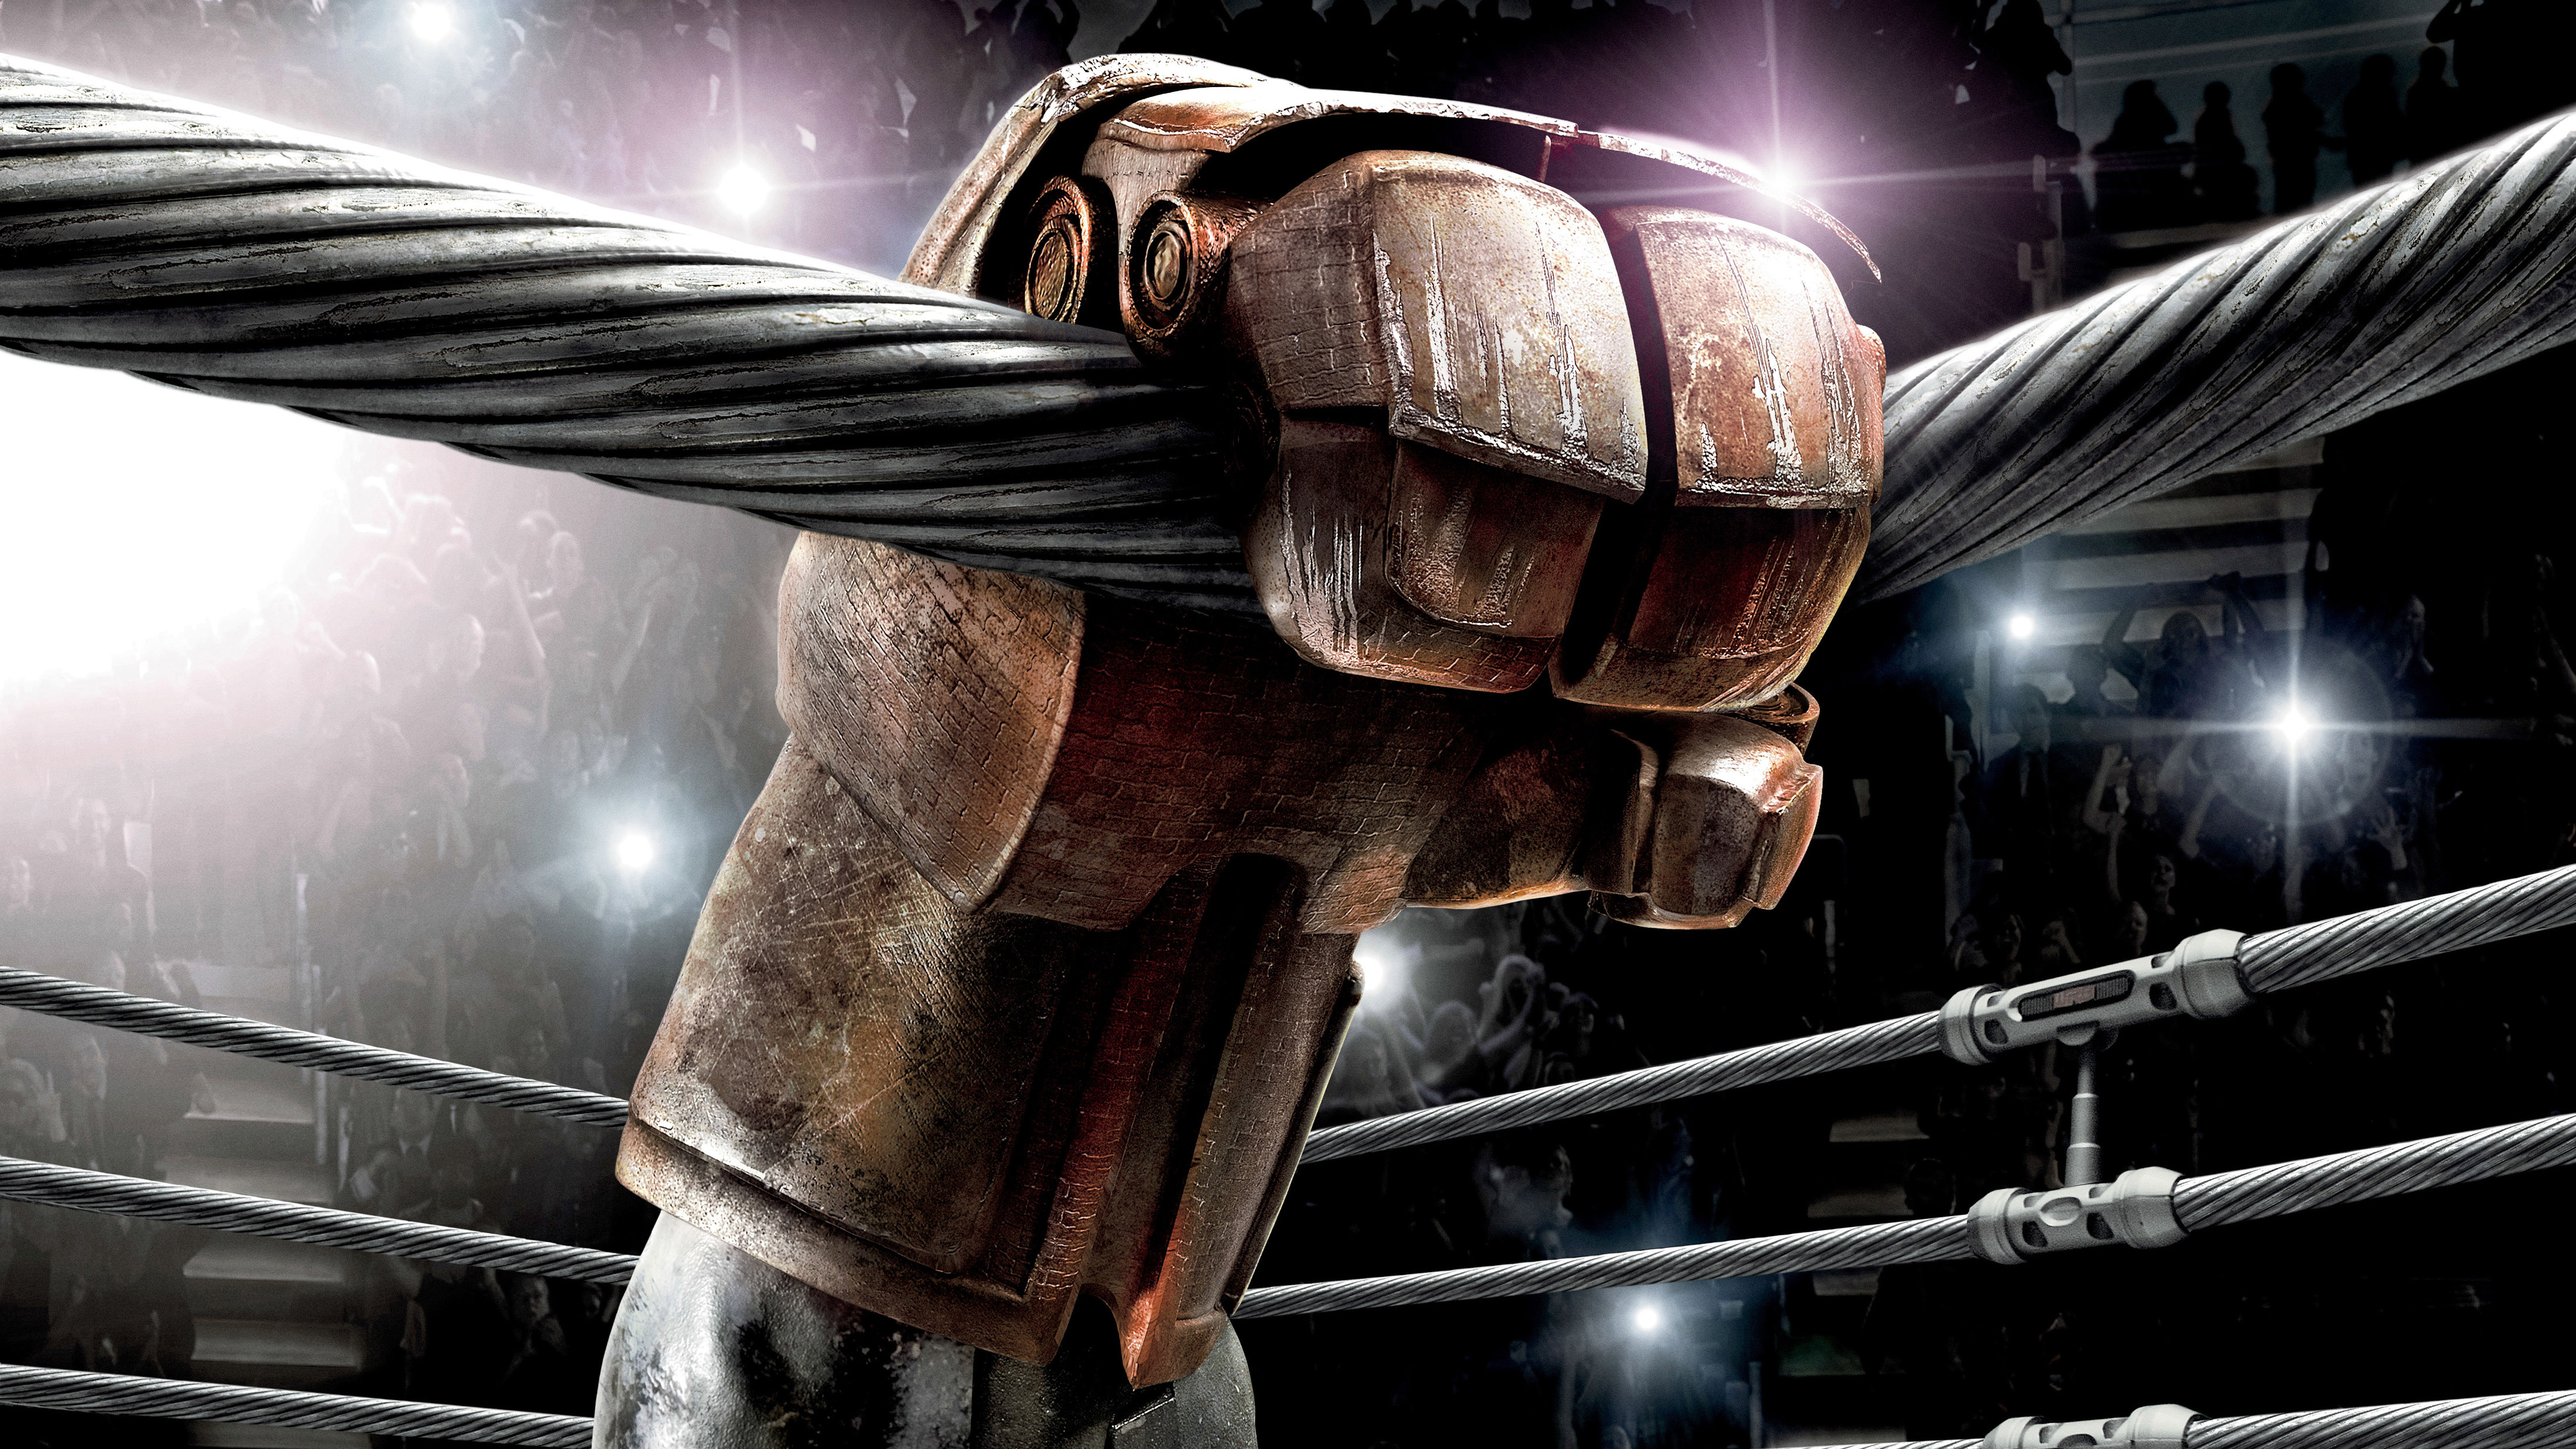 real steel 4k 1606594896 - Real Steel 4k - Real Steel 4k wallpapers